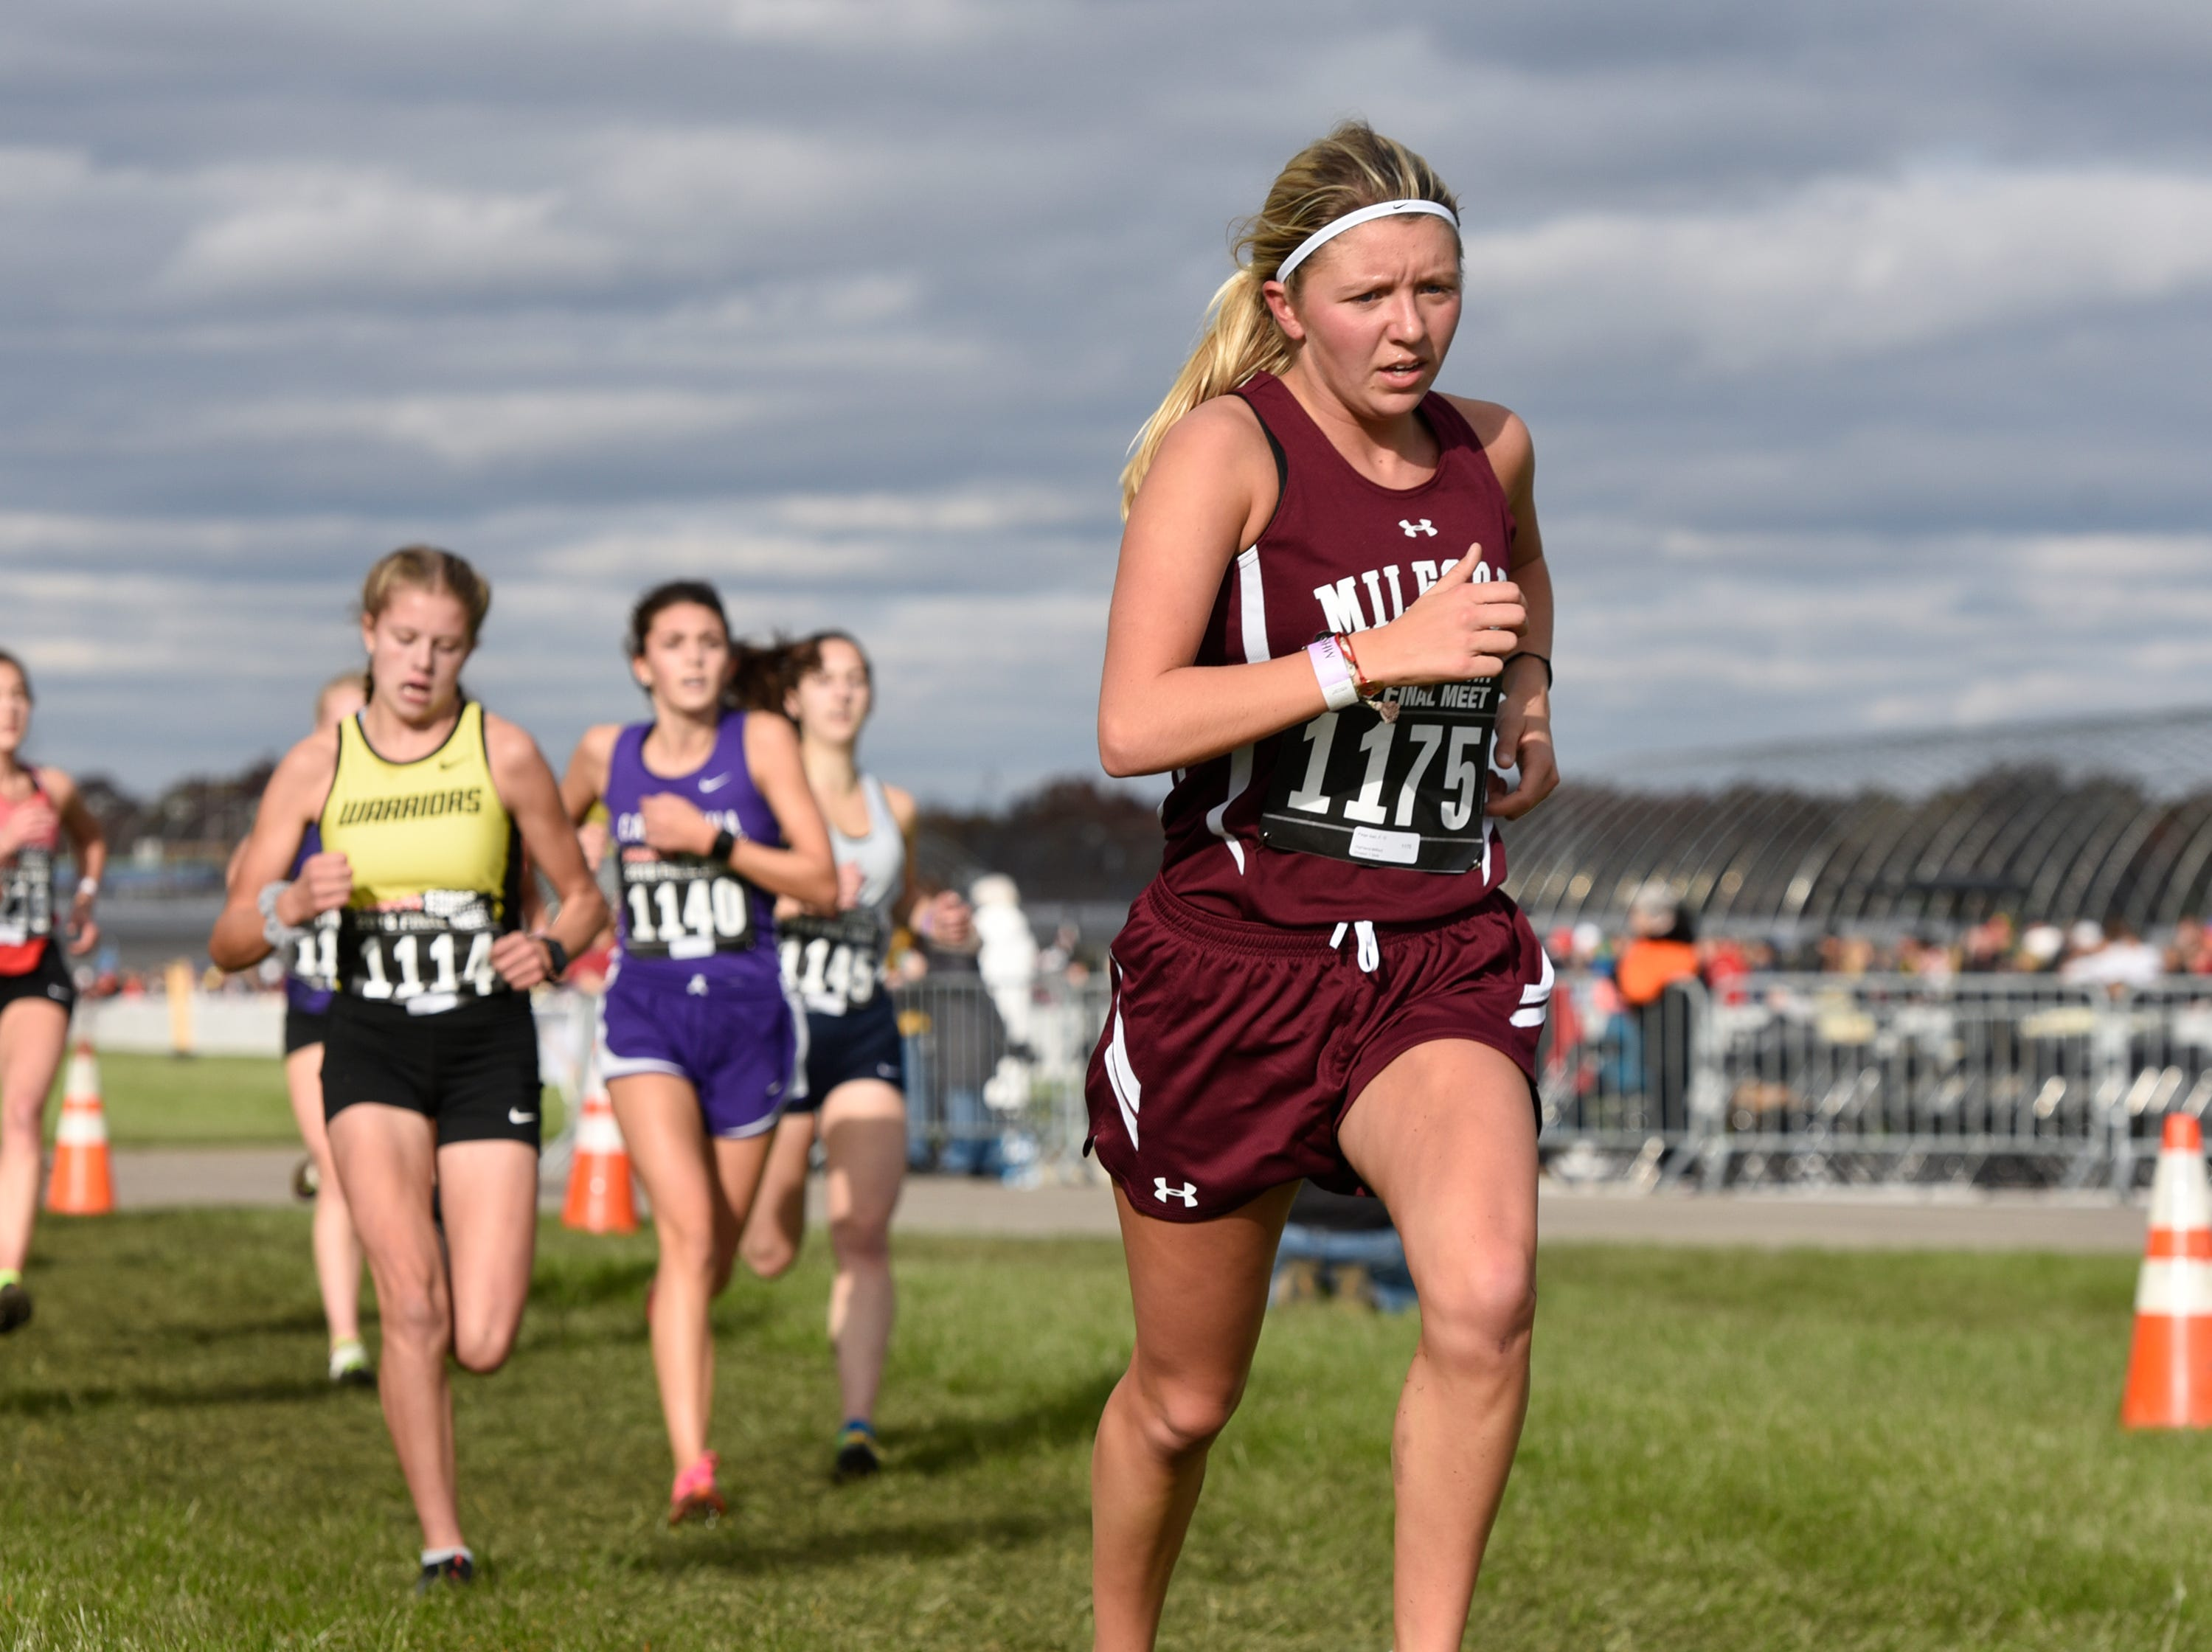 Milford's Paige Saiz during the Division 1 2018 cross country finals at Michigan International Speedway.